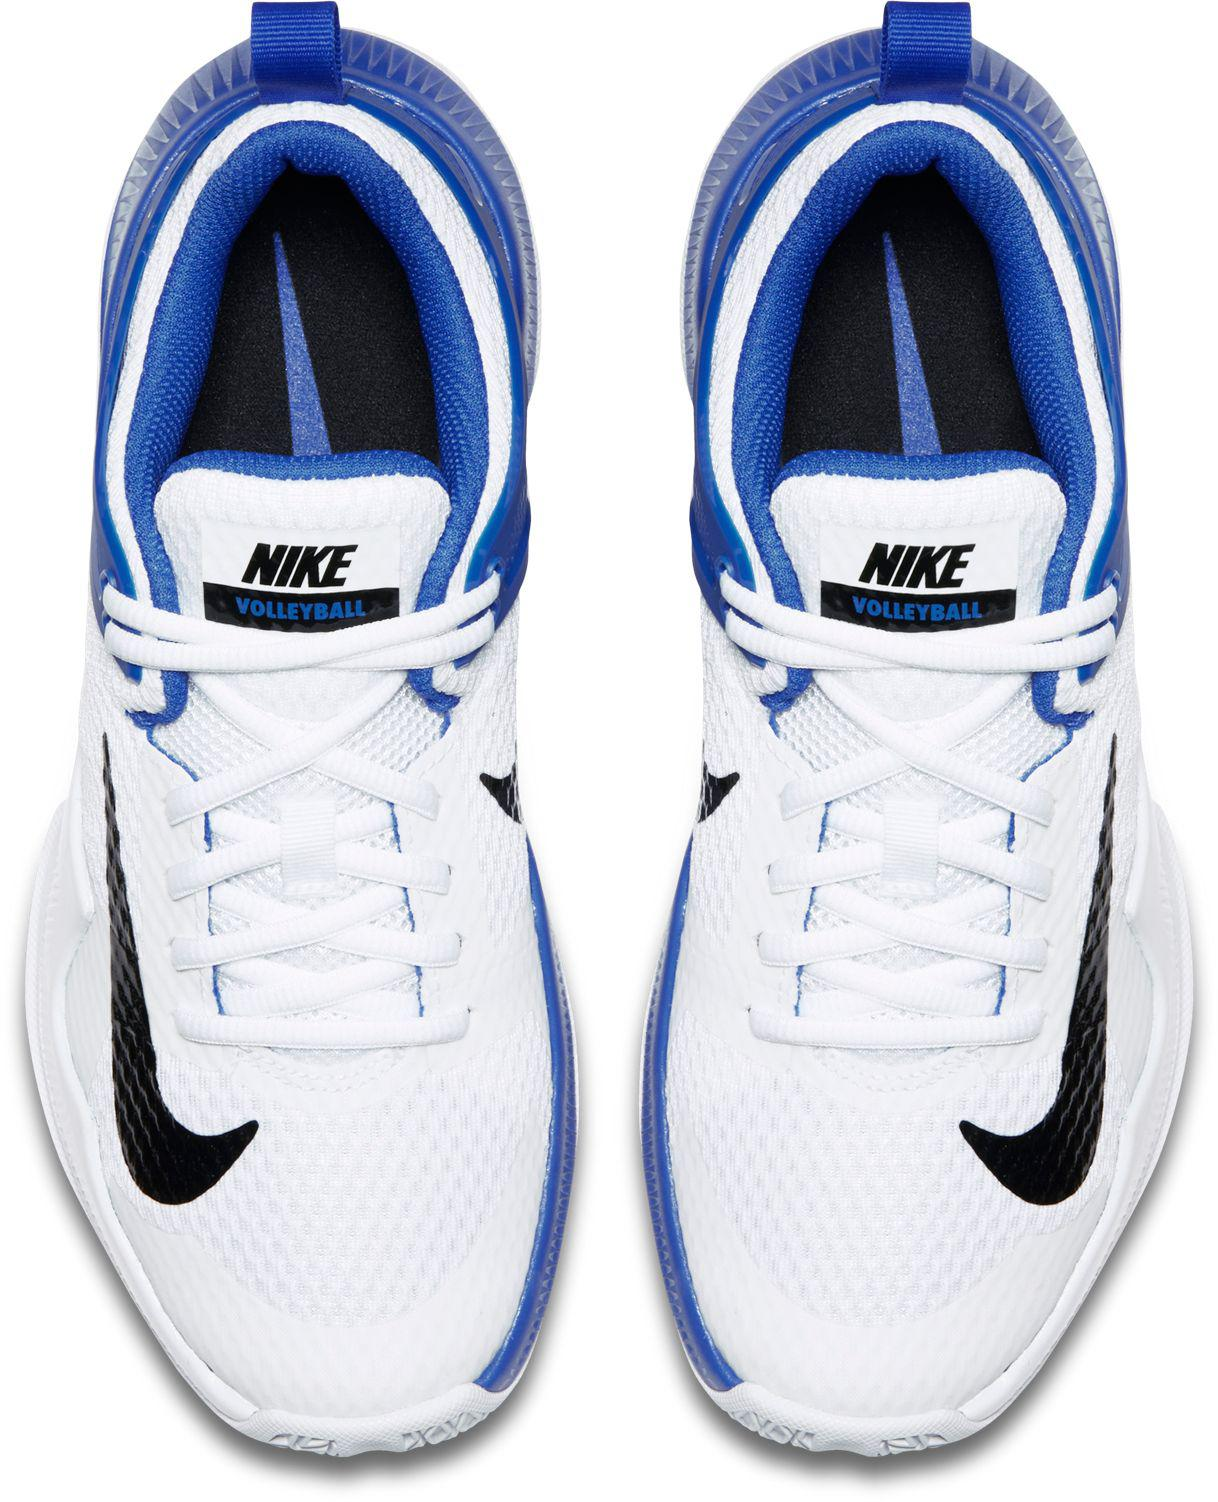 buy online 11bcd b23b9 Nike - Blue Air Zoom Hyperace Volleyball Shoes - Lyst